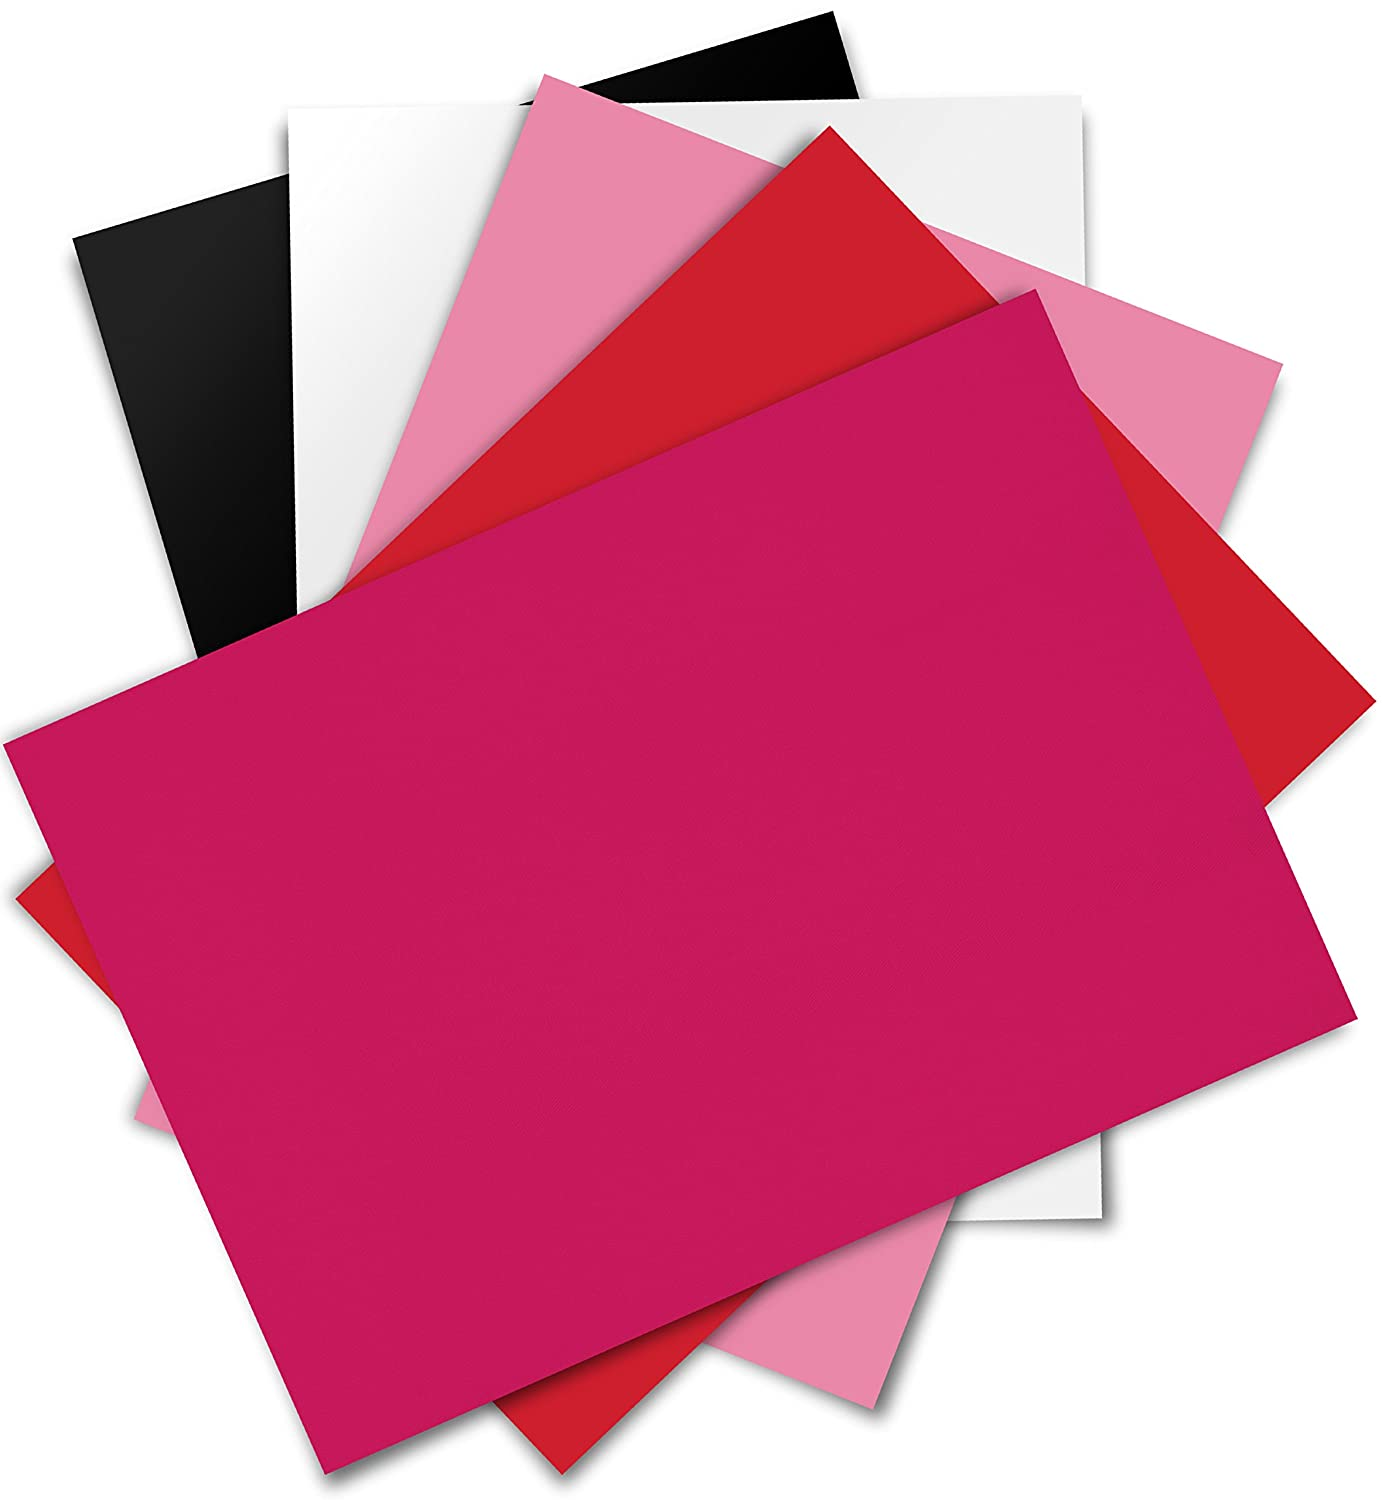 Firefly Craft 熱転写ビニール シルエットとクリカットに対応 12インチ × 20インチ 5 sheets B01M7NO9IT 5 sheets|White, Black, Pink, Deep Pink, Red White, Black, Pink, Deep Pink, Red 5 sheets